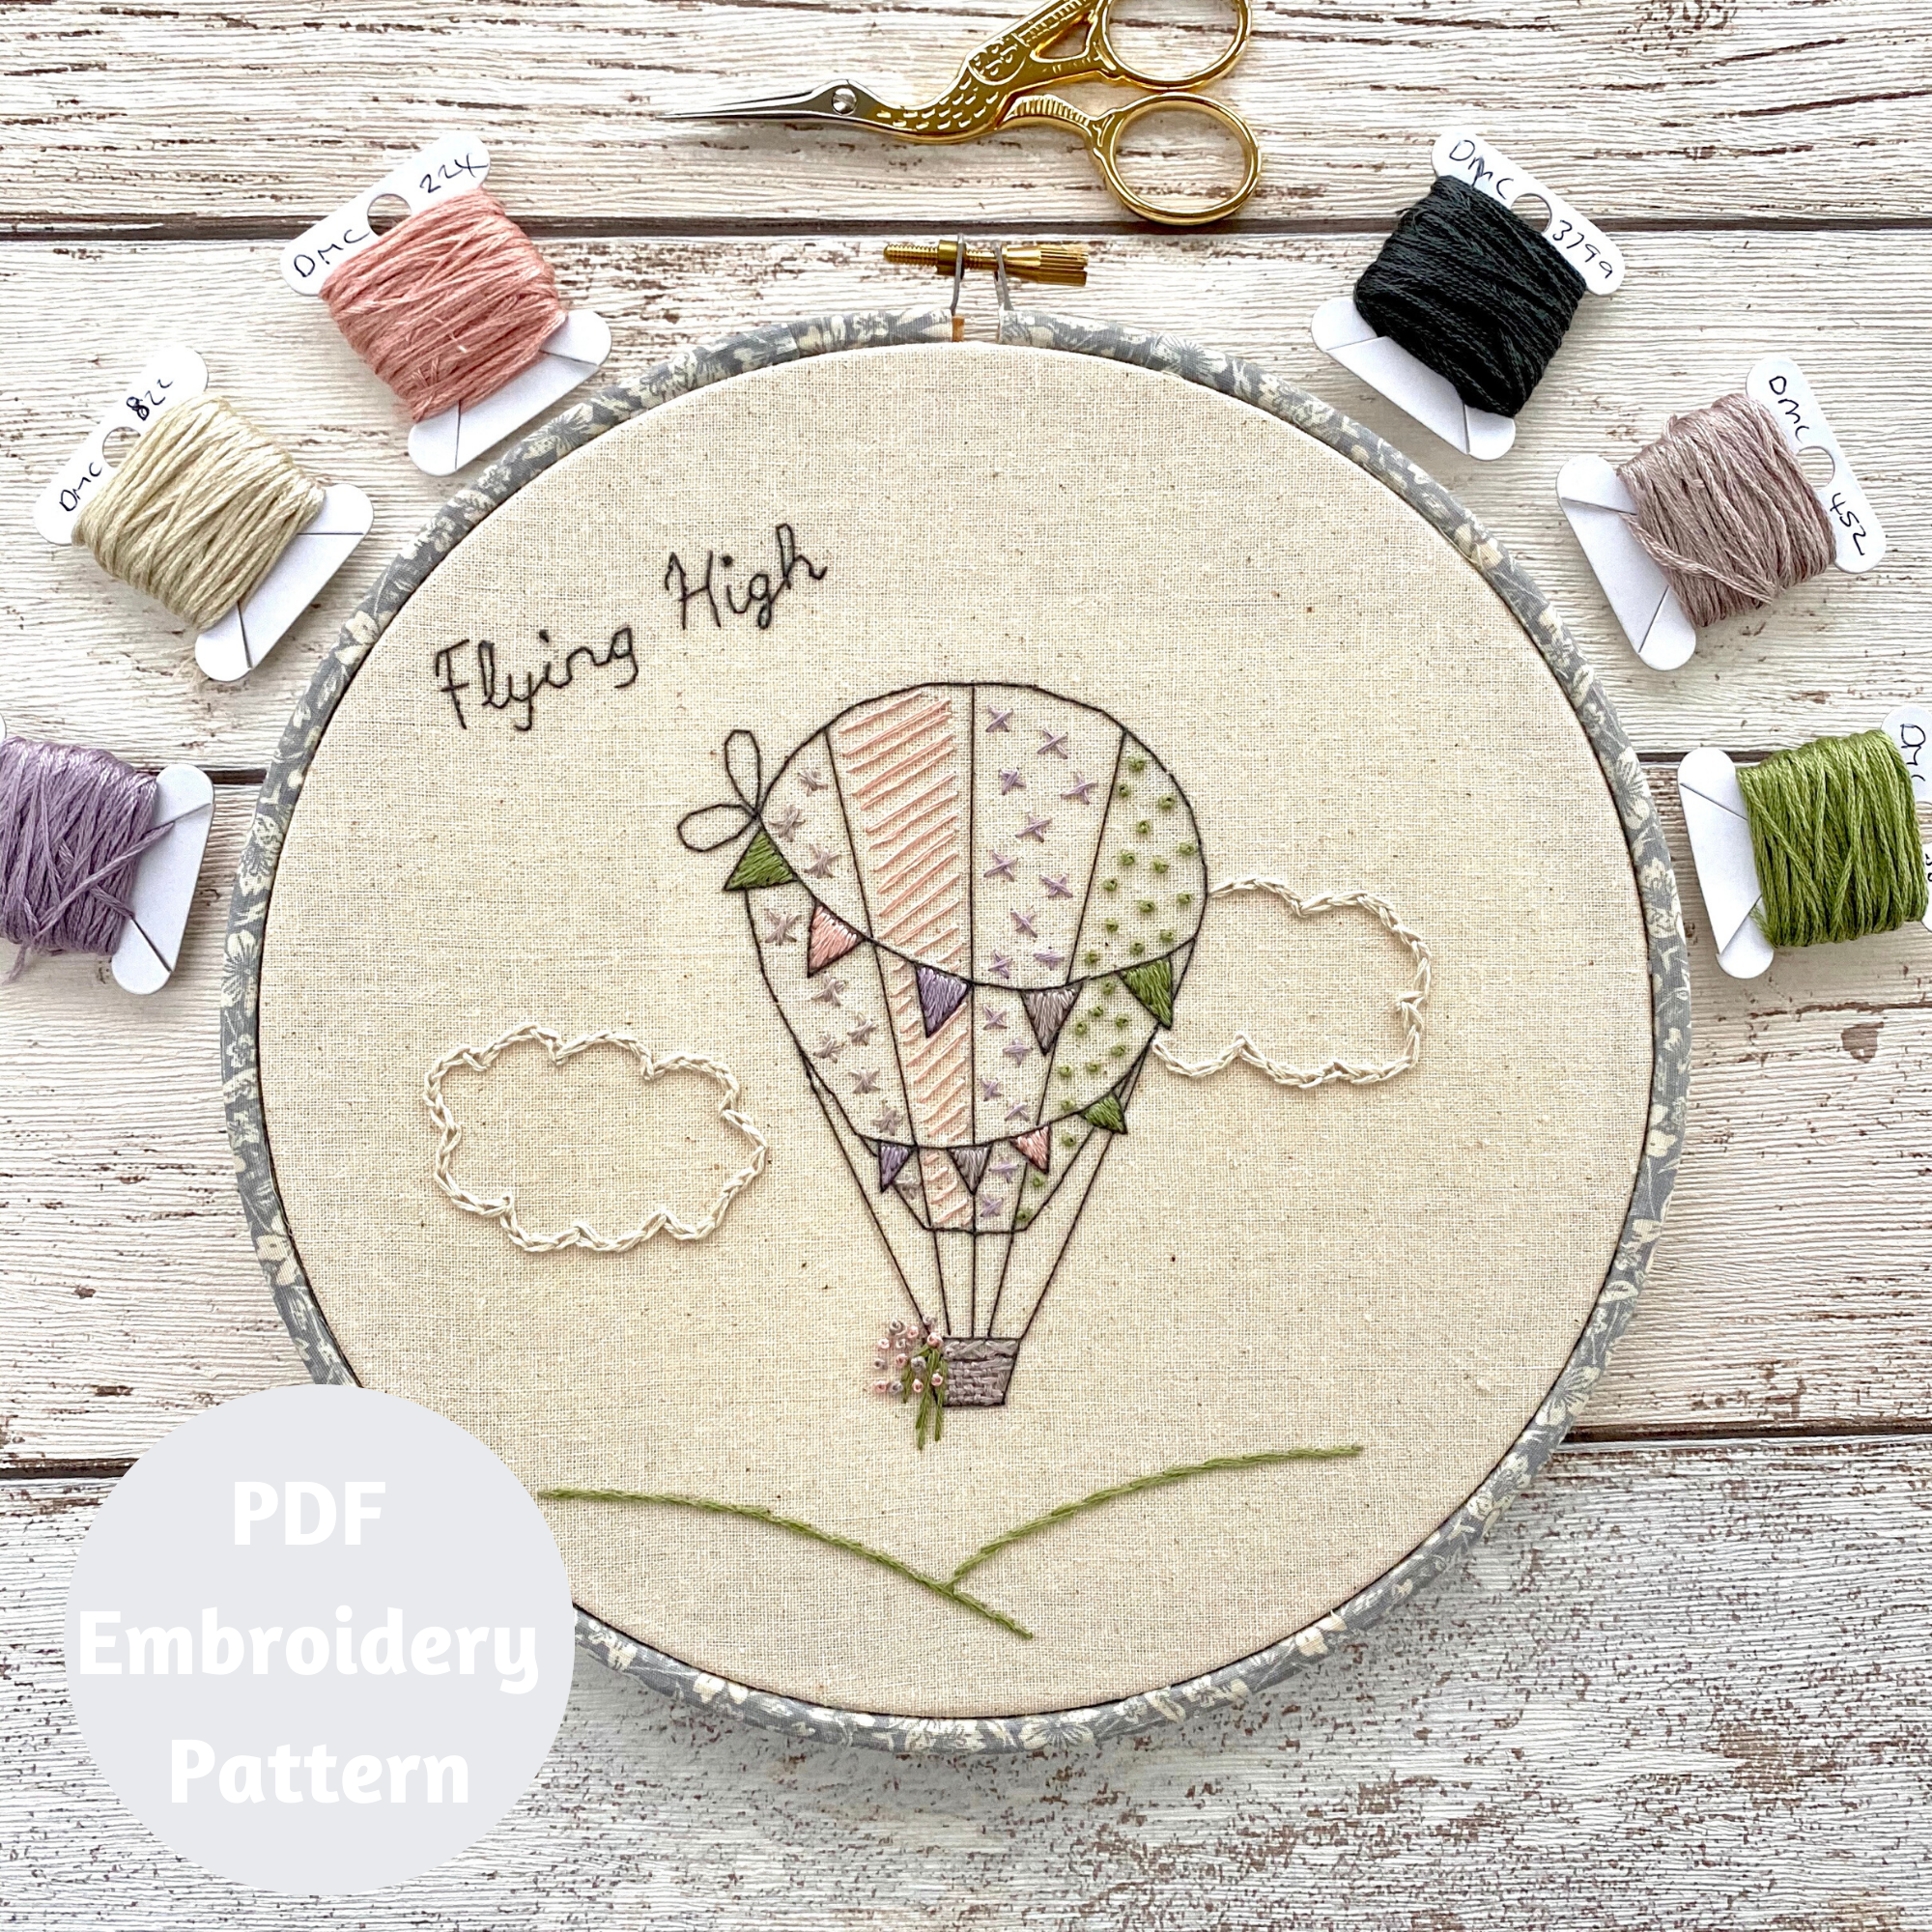 Hot air balloon hand embroidery pattern shown with coloured embroidery threads and embroidery scissors.